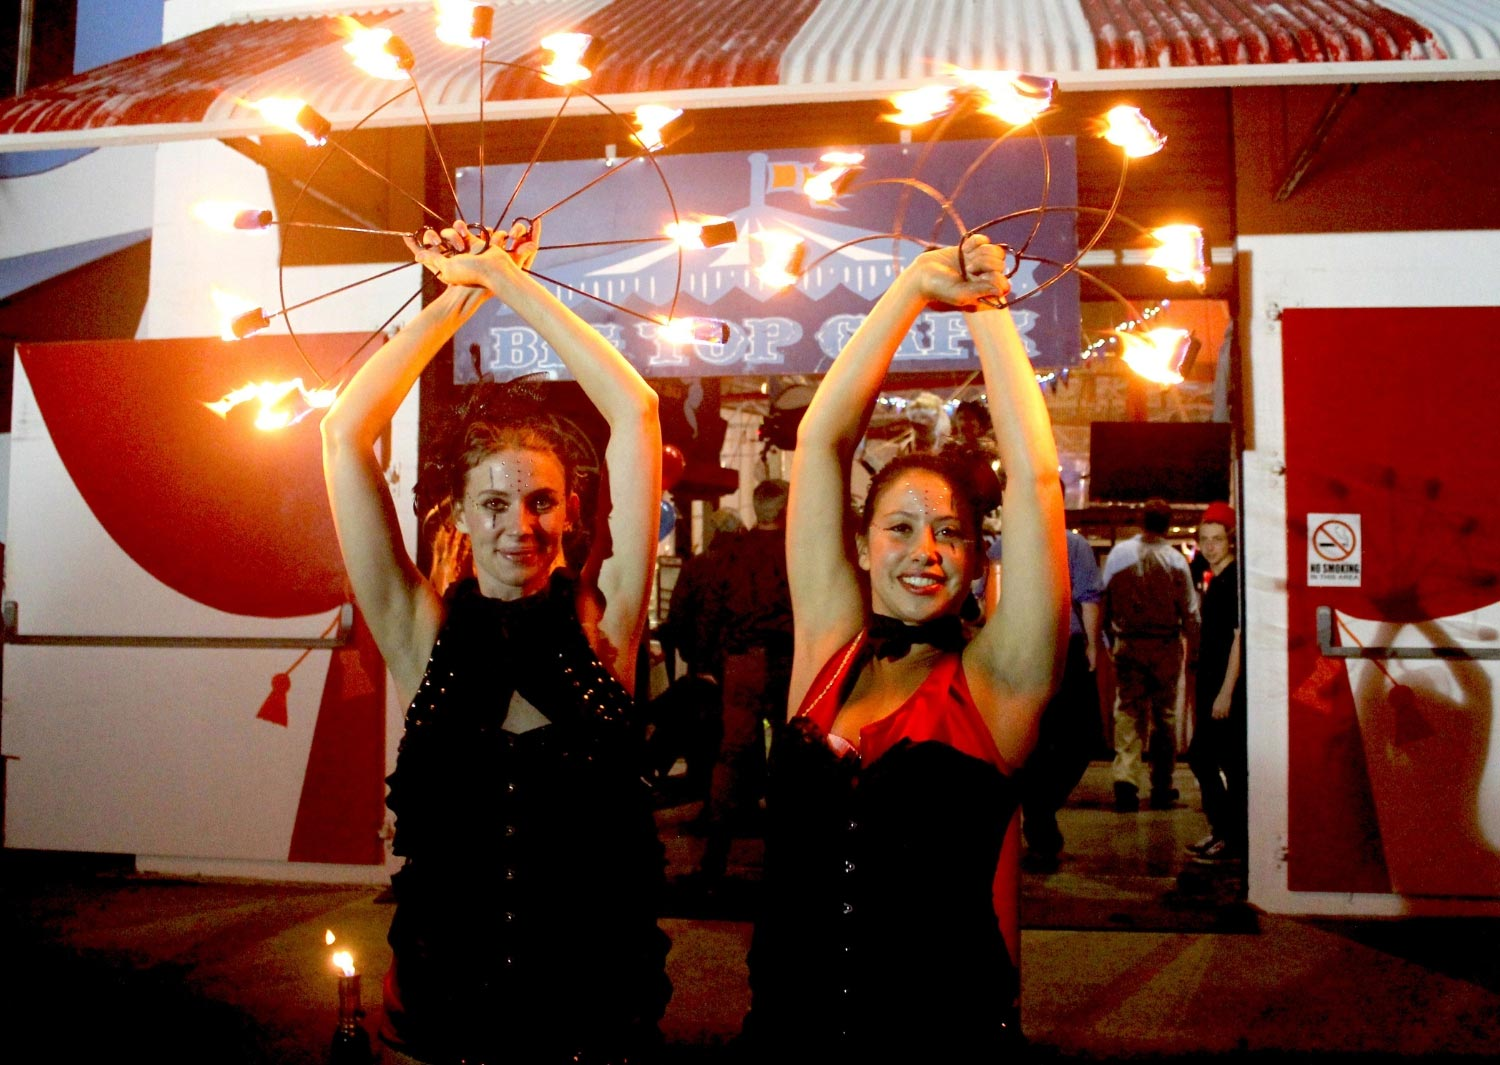 circus-arts-byron-bay-venue-hire-events-dinners-shows-performances-corporate-private-functions-6